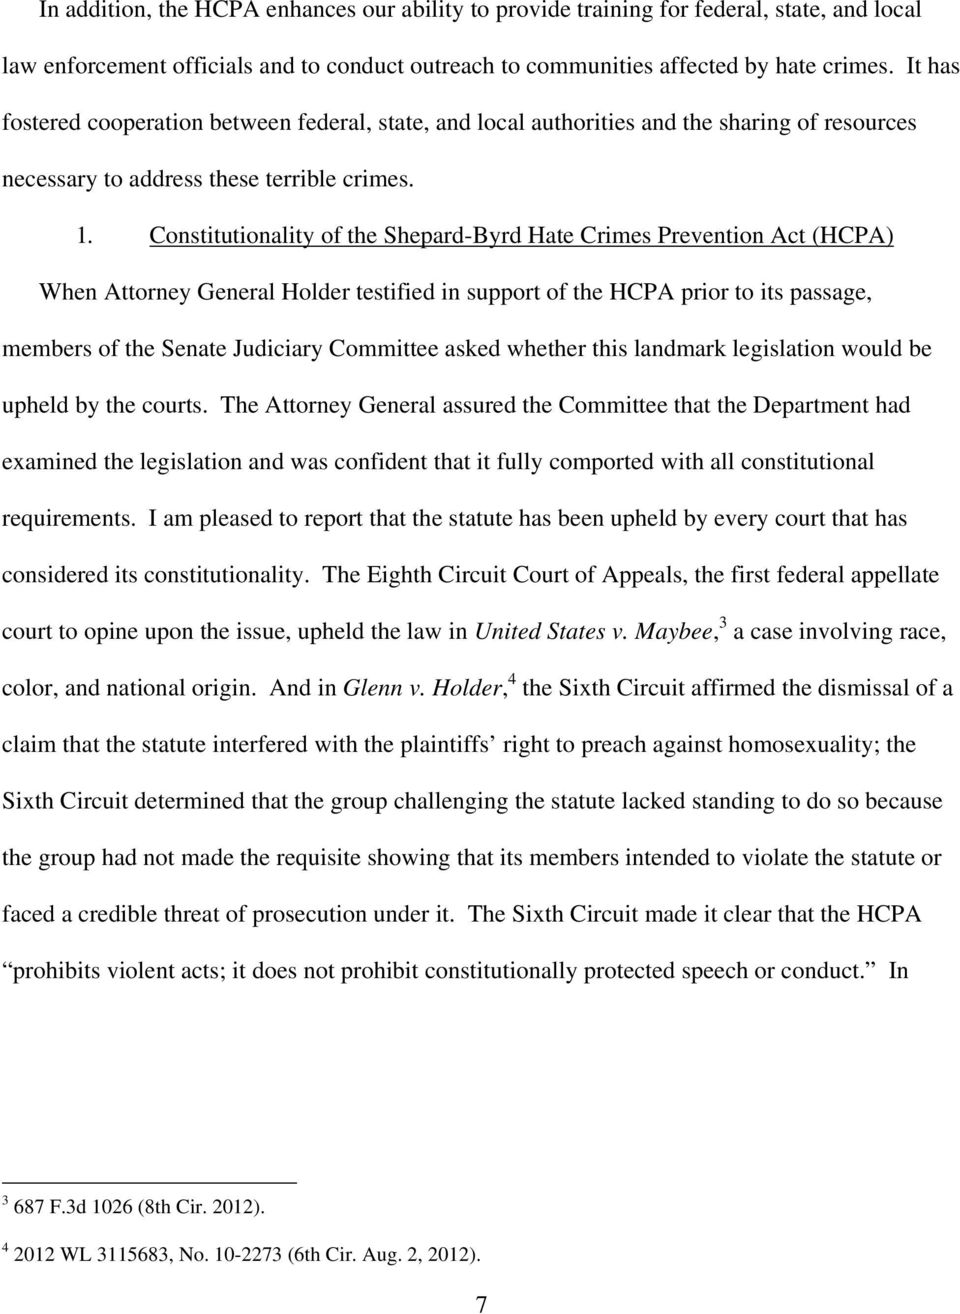 Constitutionality of the Shepard-Byrd Hate Crimes Prevention Act (HCPA) When Attorney General Holder testified in support of the HCPA prior to its passage, members of the Senate Judiciary Committee